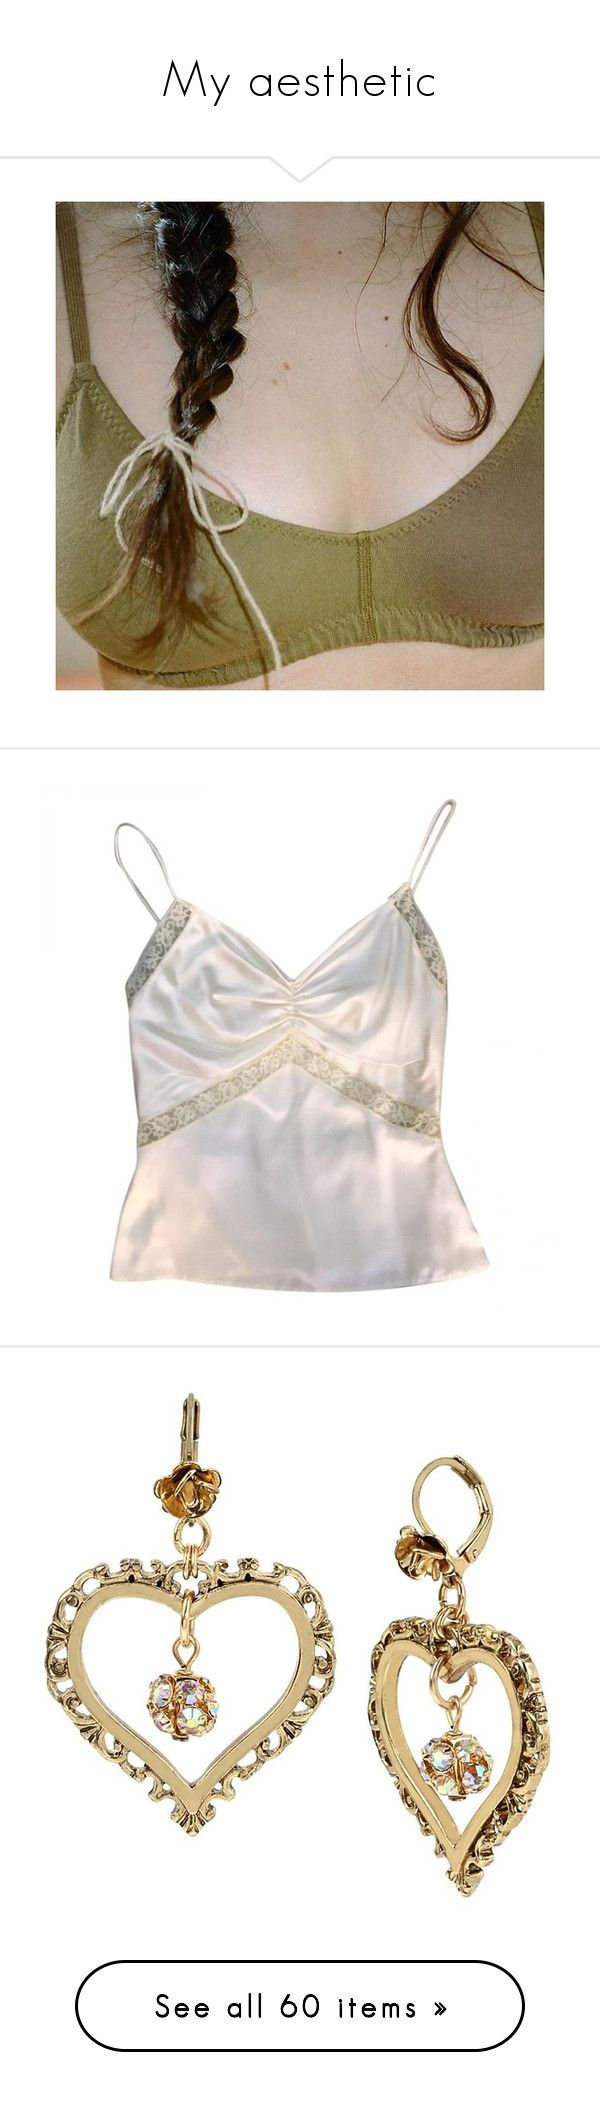 """""""My aesthetic"""" by die-kunstlerin ❤ liked on Polyvore featuring tops, tank tops, flat top, white spaghetti strap tank top, white top, silk tank tops, silk tank, jewelry, earrings and accessories"""